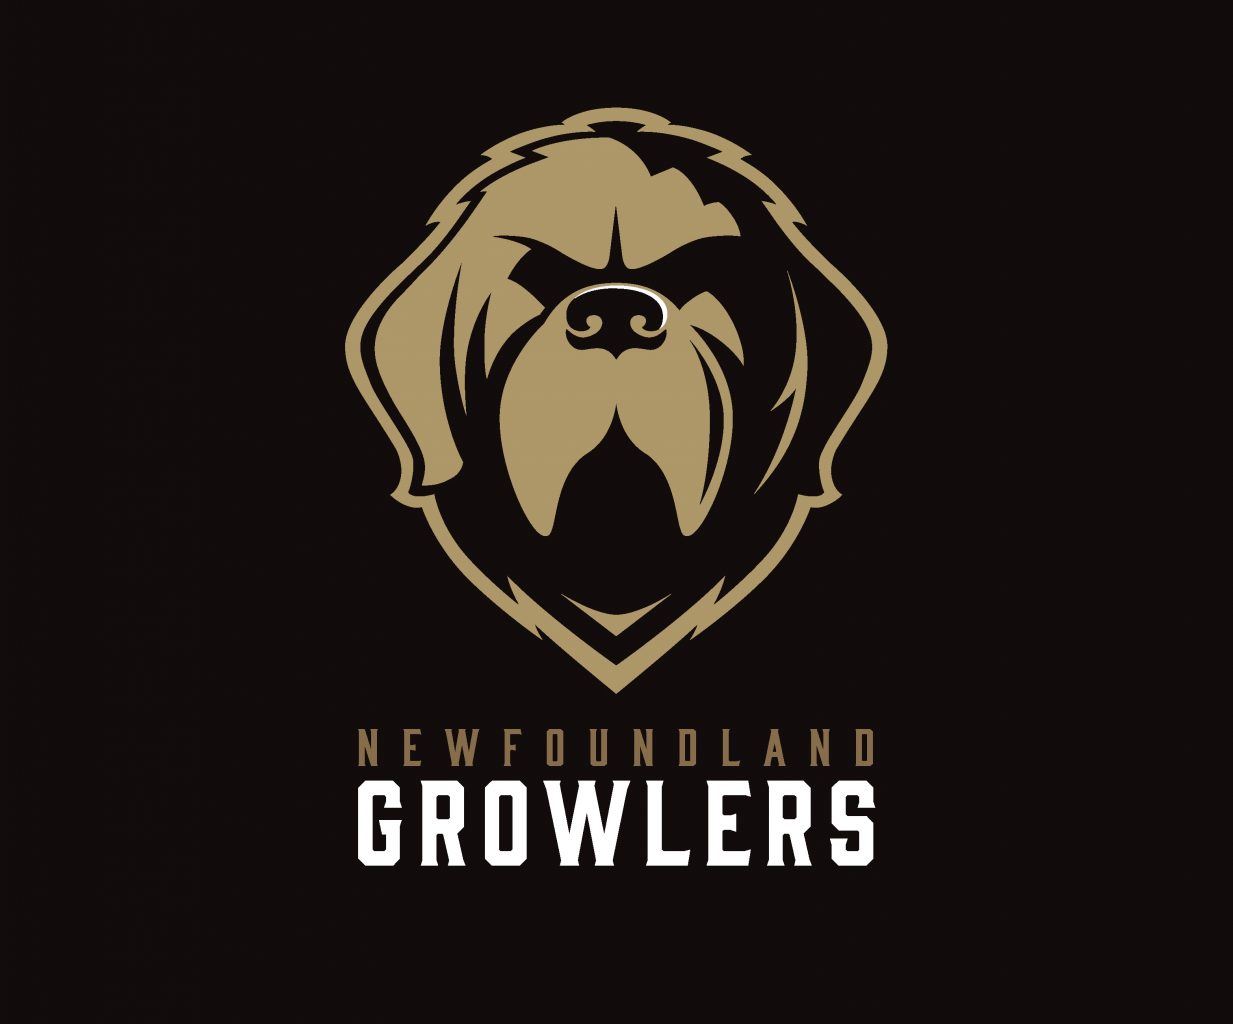 NL GROWLERS VS. READING ROYALS